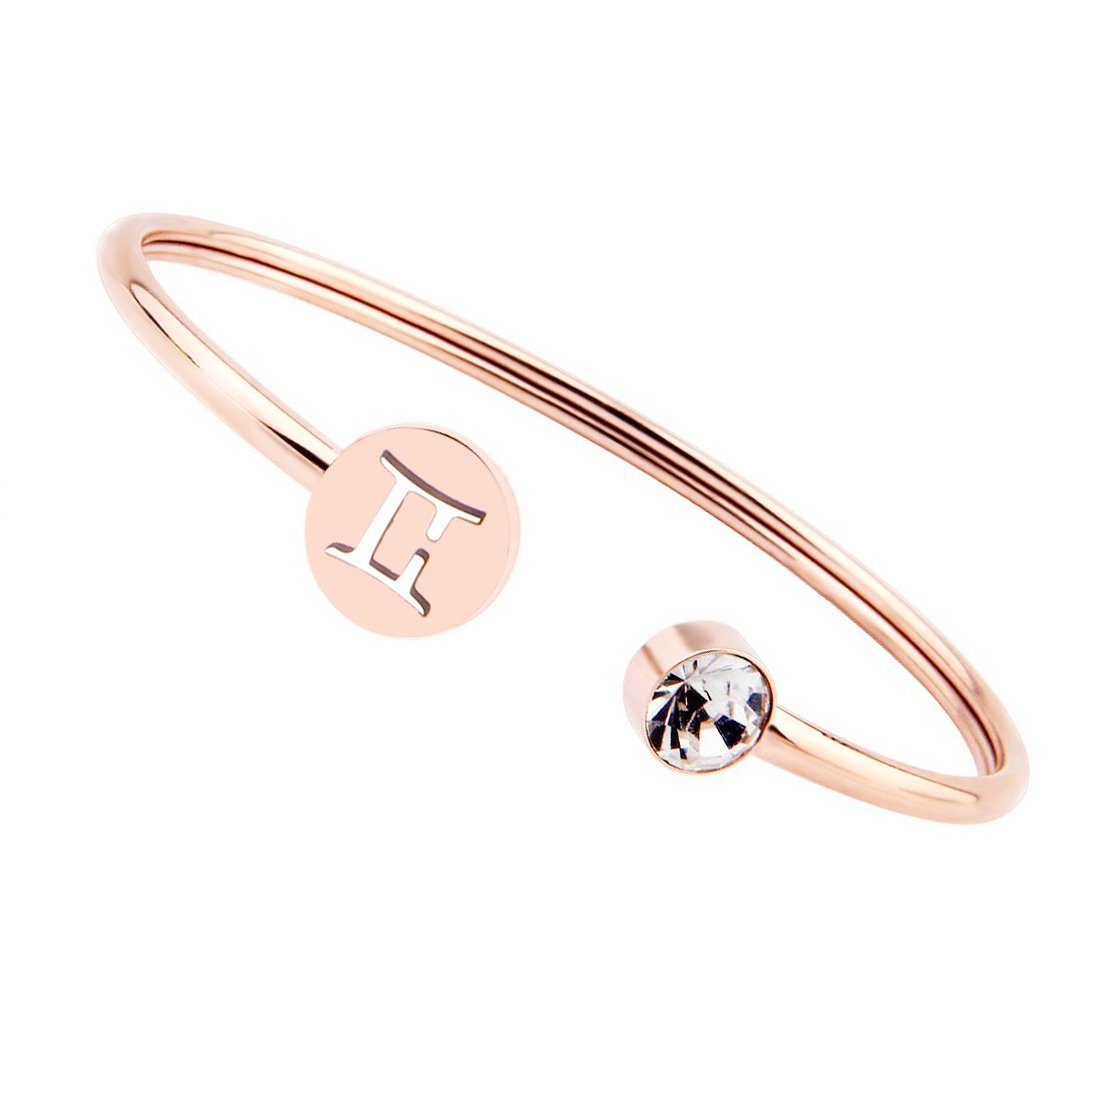 WUSUANED Rose Gold Zodiac Sign Cuff Bracelet Bangle with Clear Crystal Birthday Gift for her